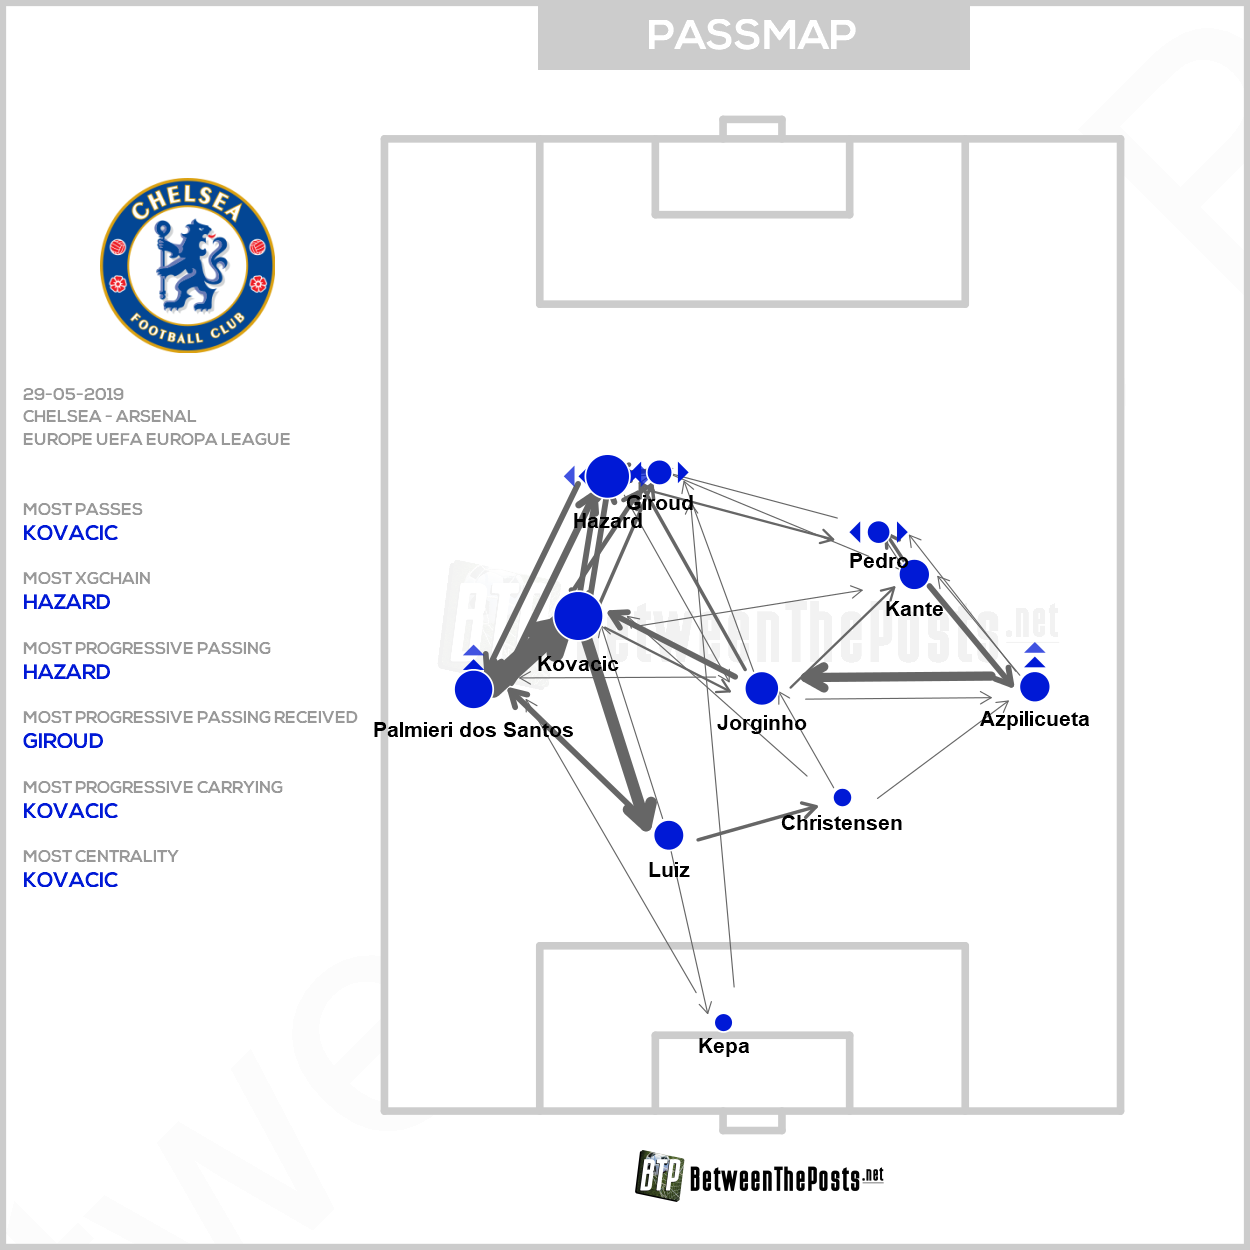 Passmap Chelsea Arsenal 4-1 Europa League final